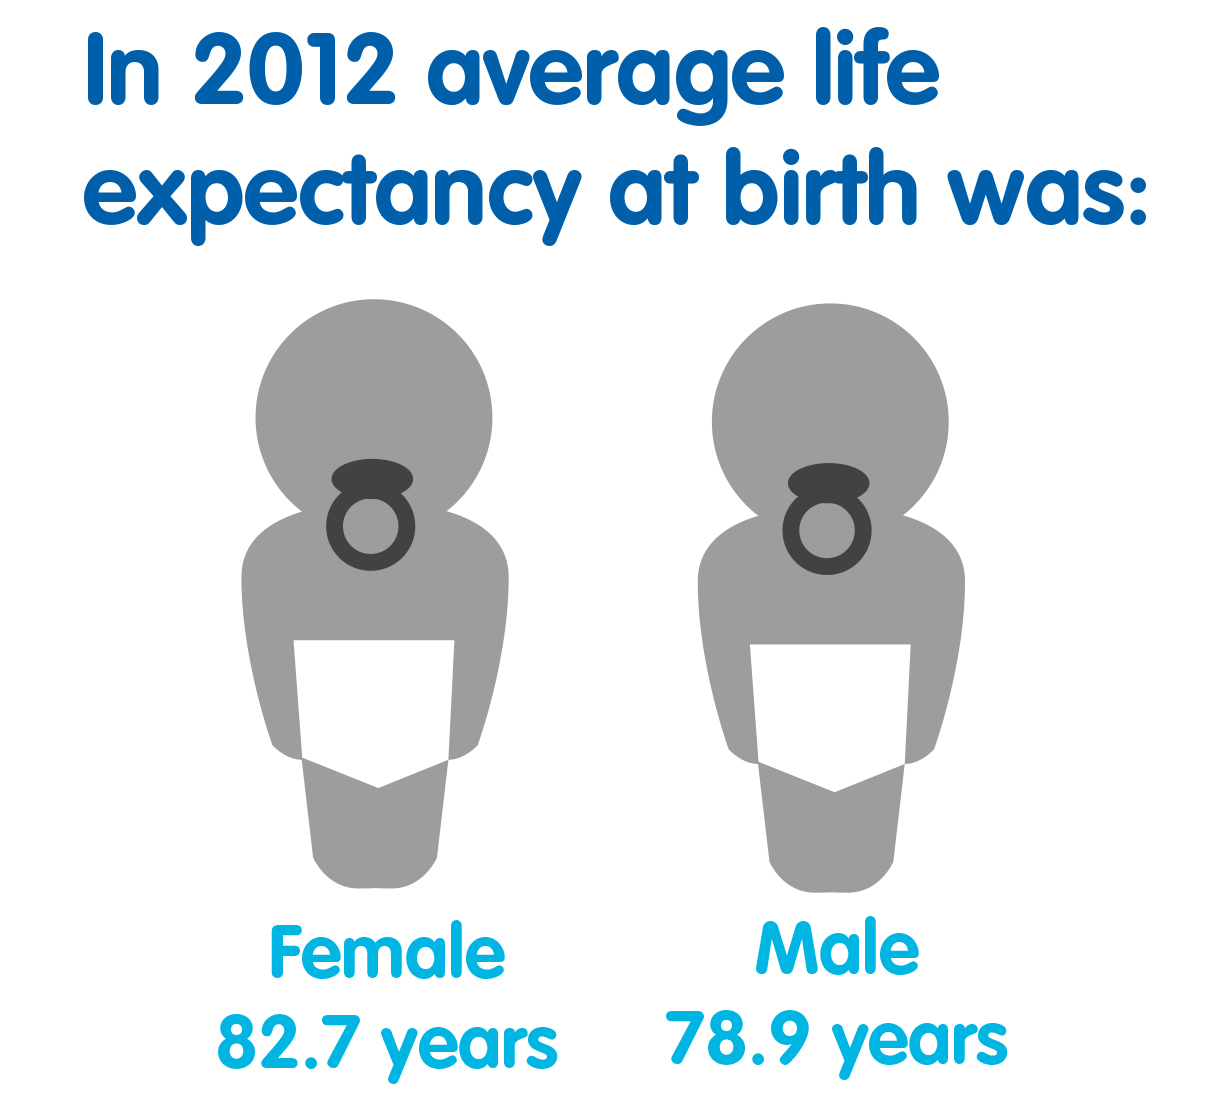 2012 average life expectancy at birth